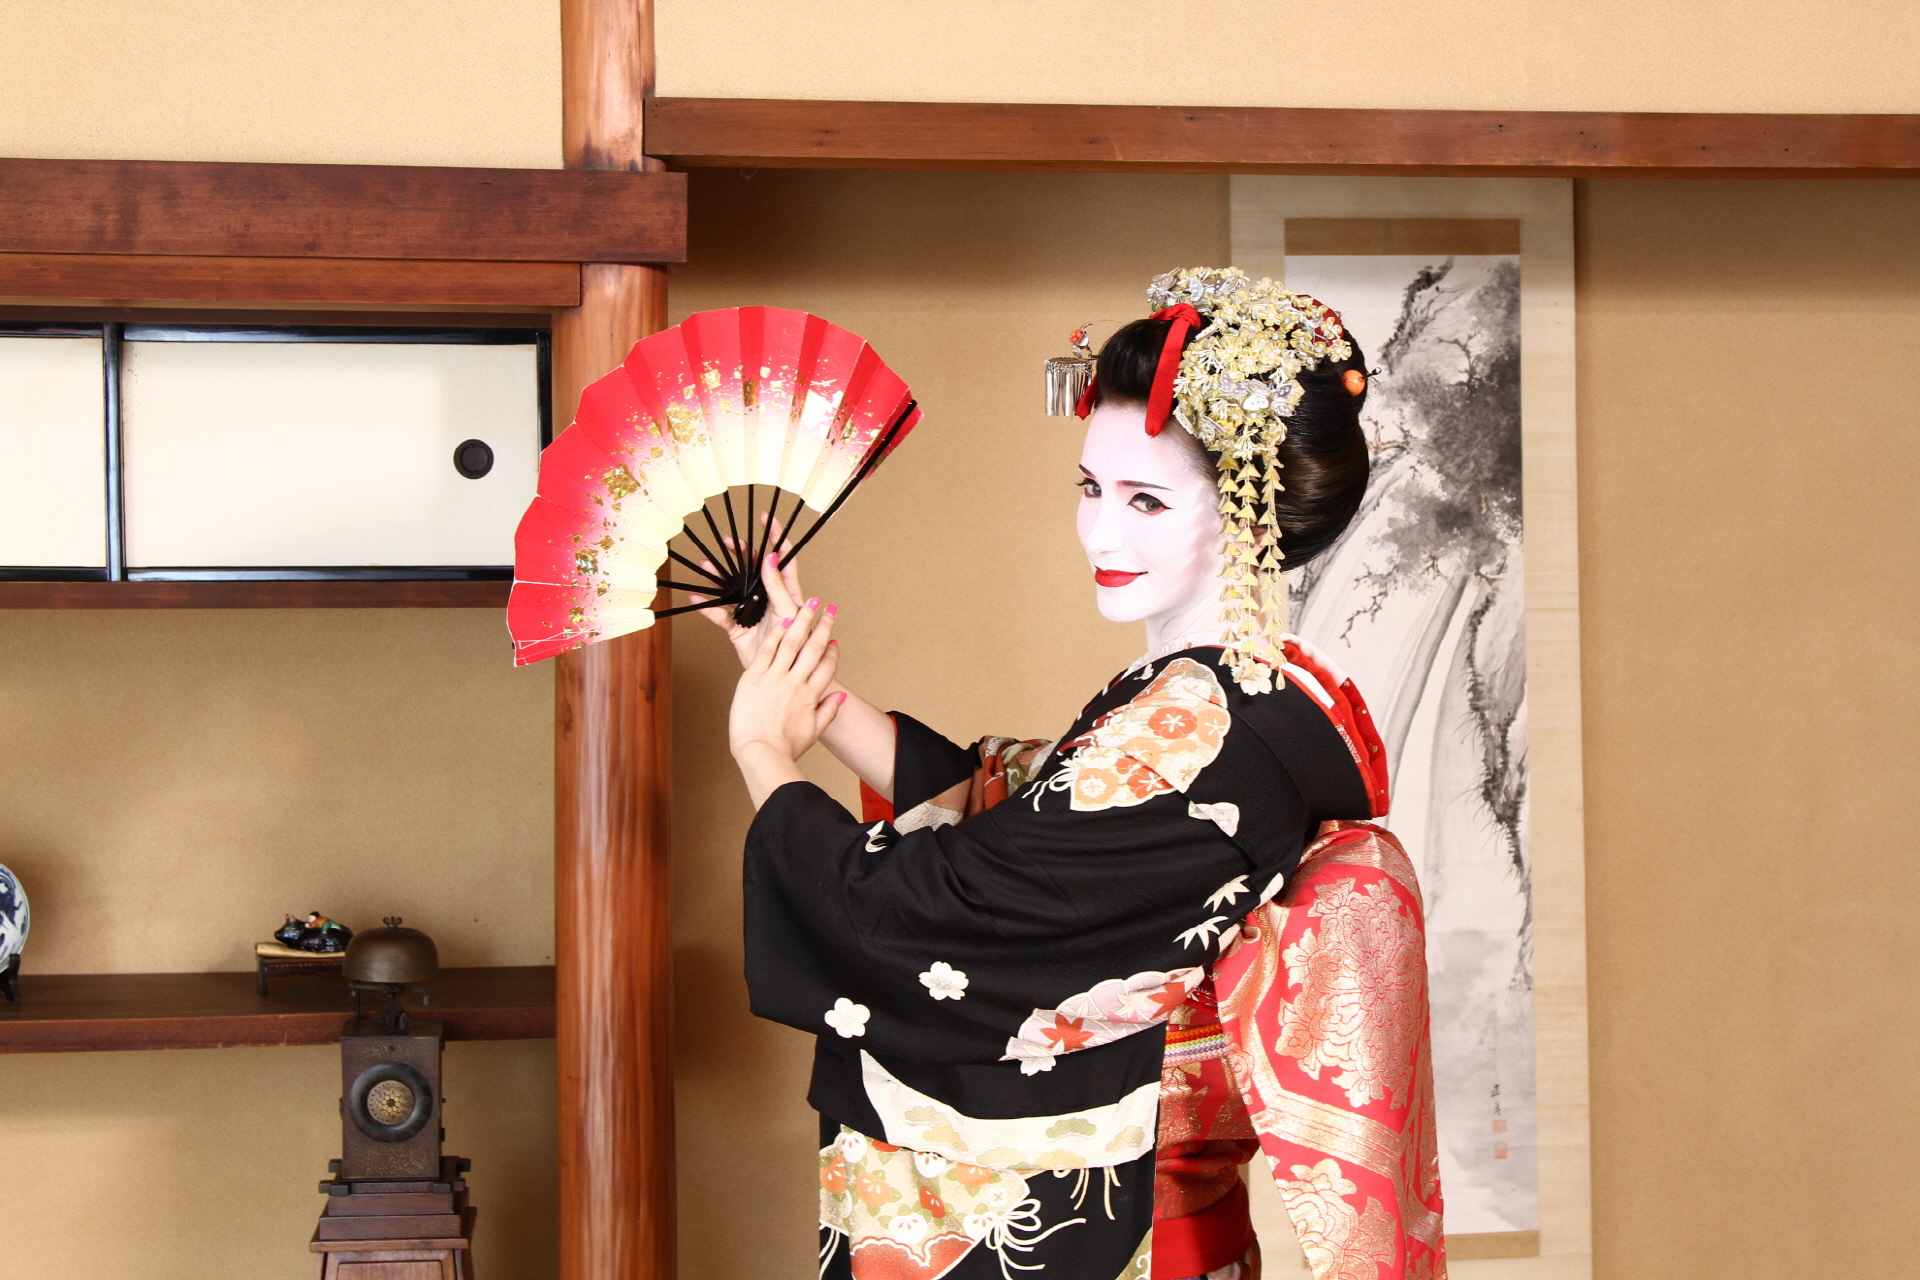 Transform into a Beautiful Maiko and Have a Photoshoot!